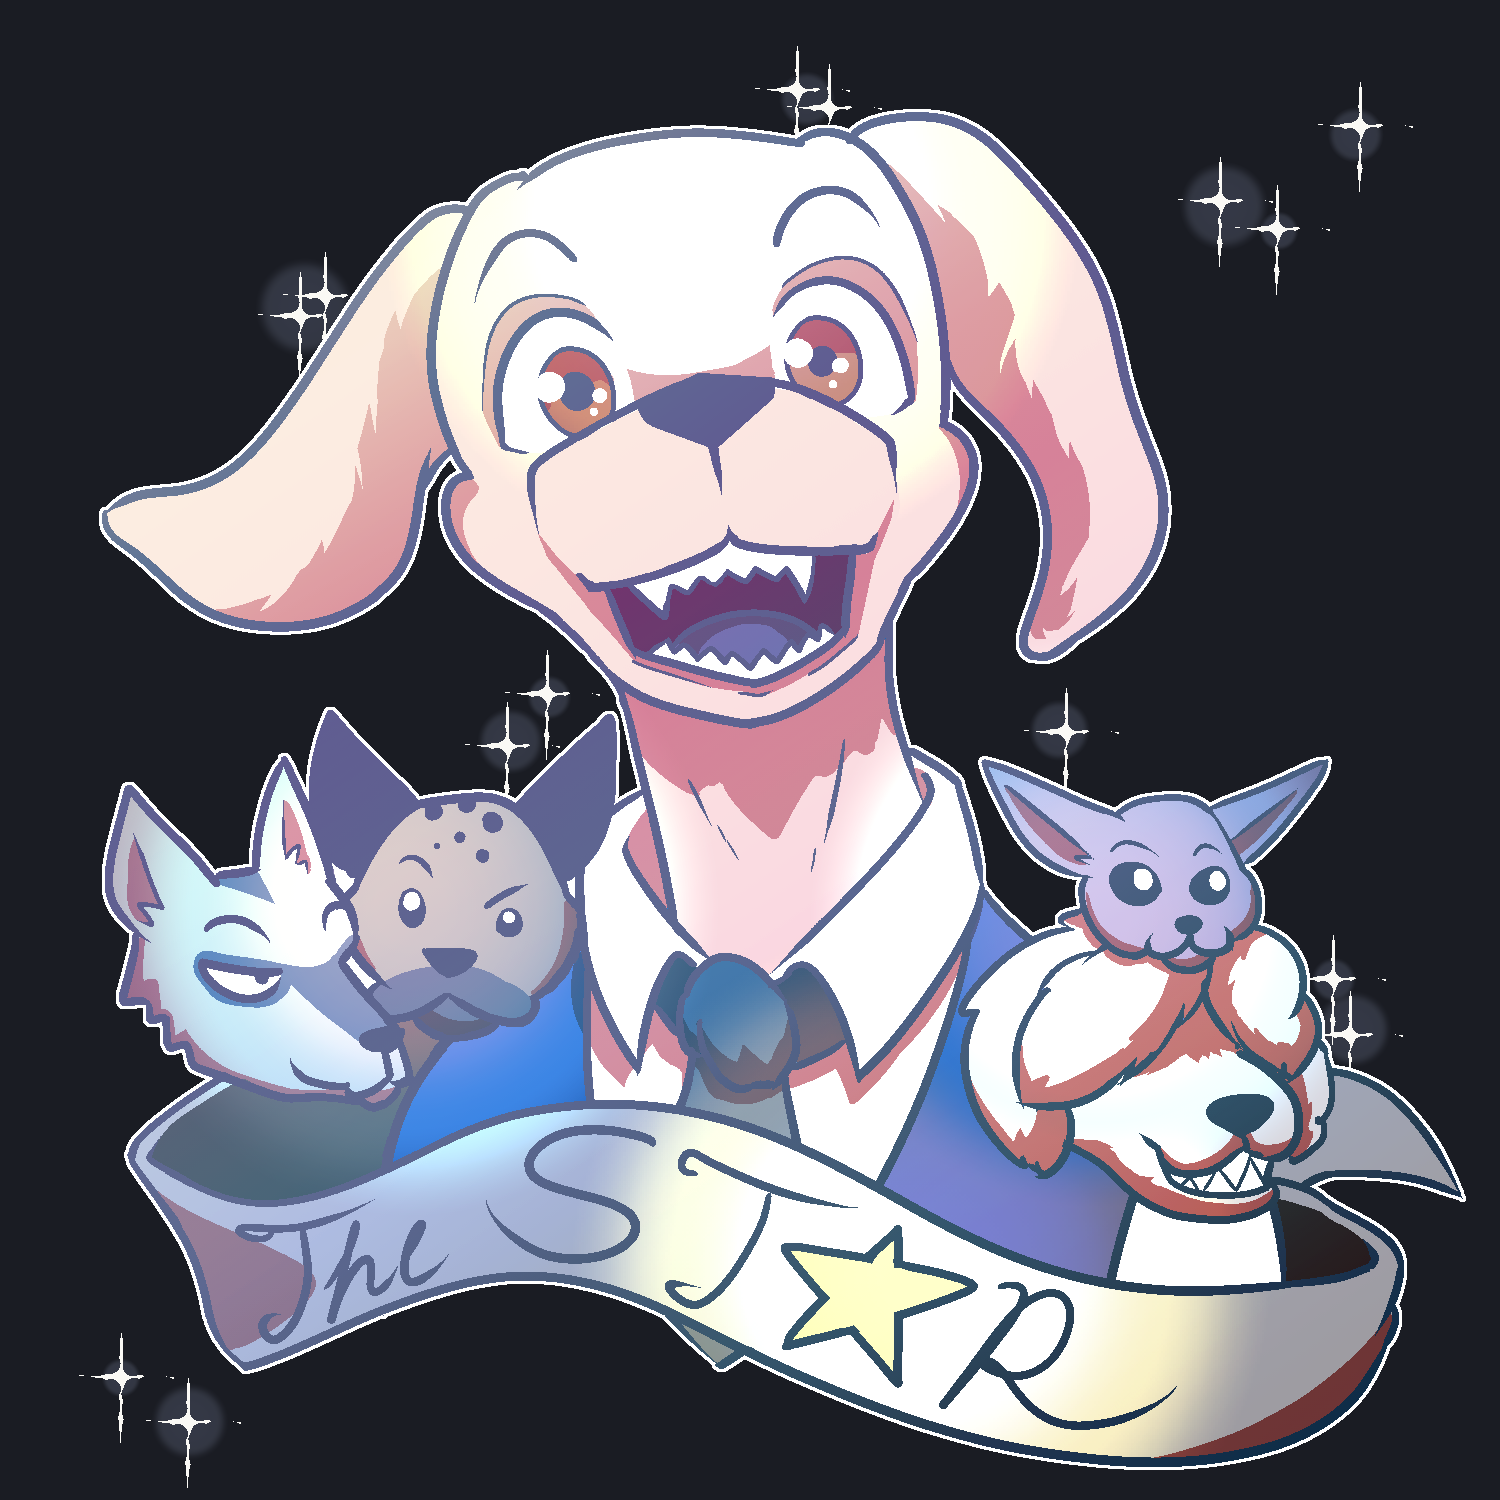 Jack - The Star